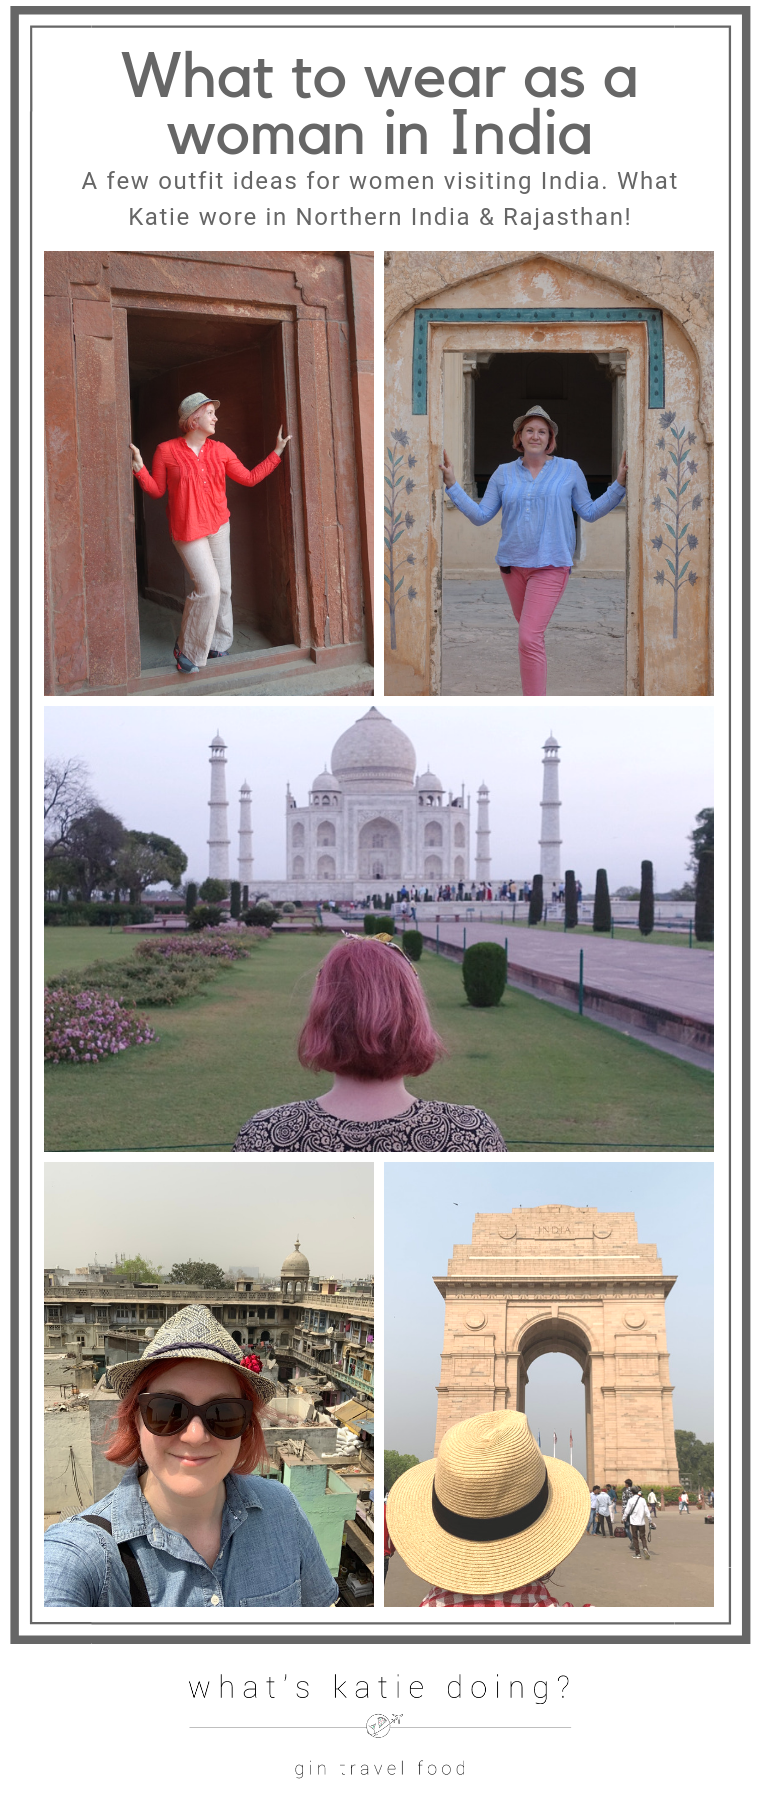 What to wear as a woman visiting India - North India and Rajasthan